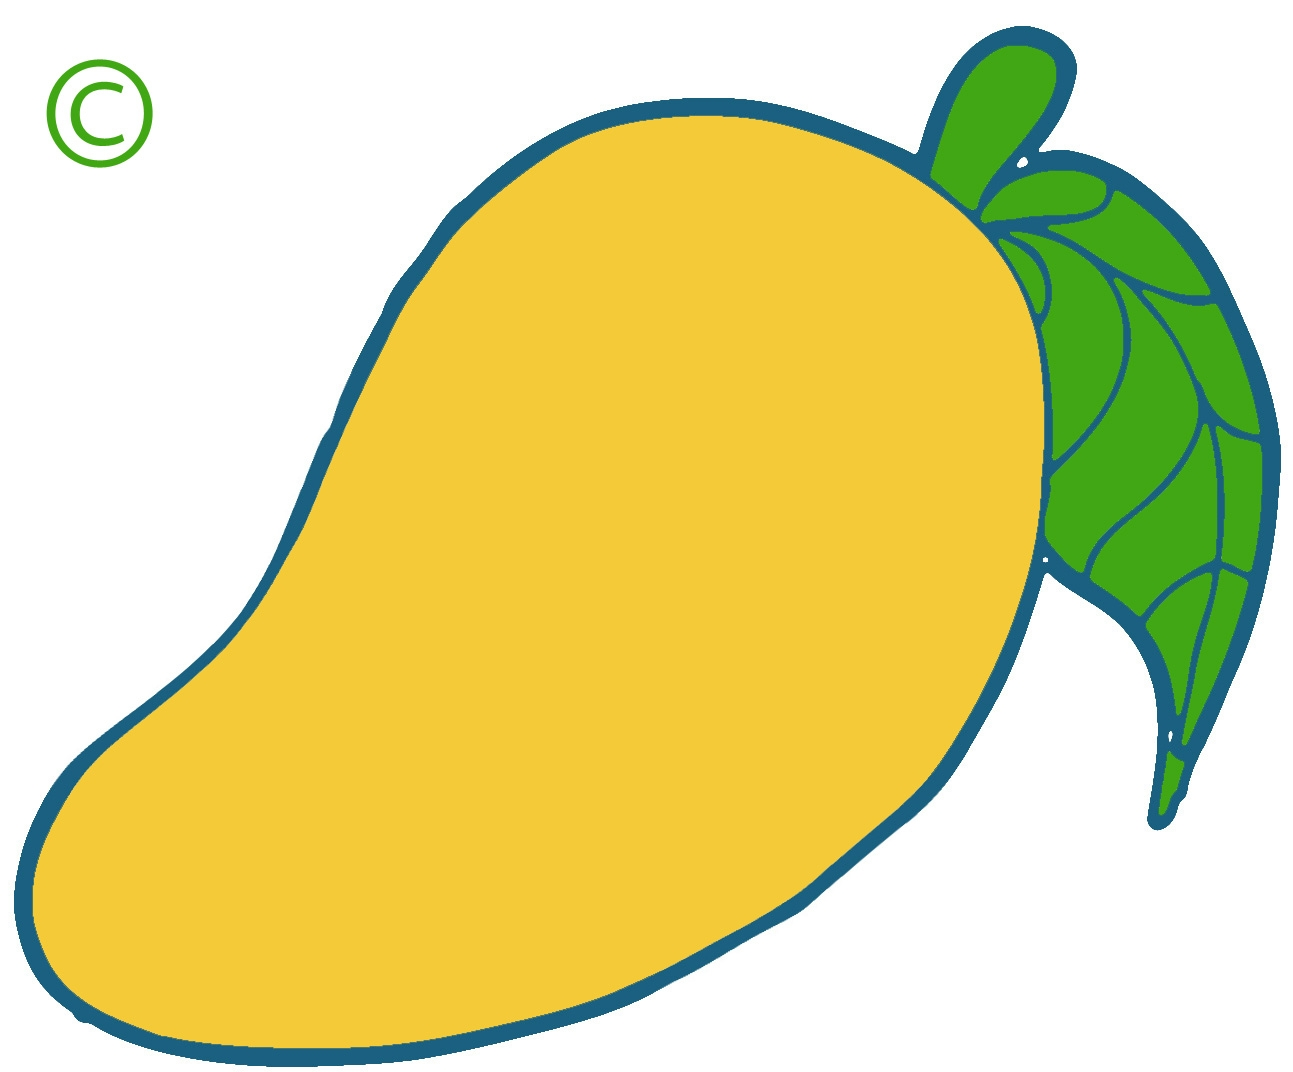 Mango clipart. At getdrawings com free